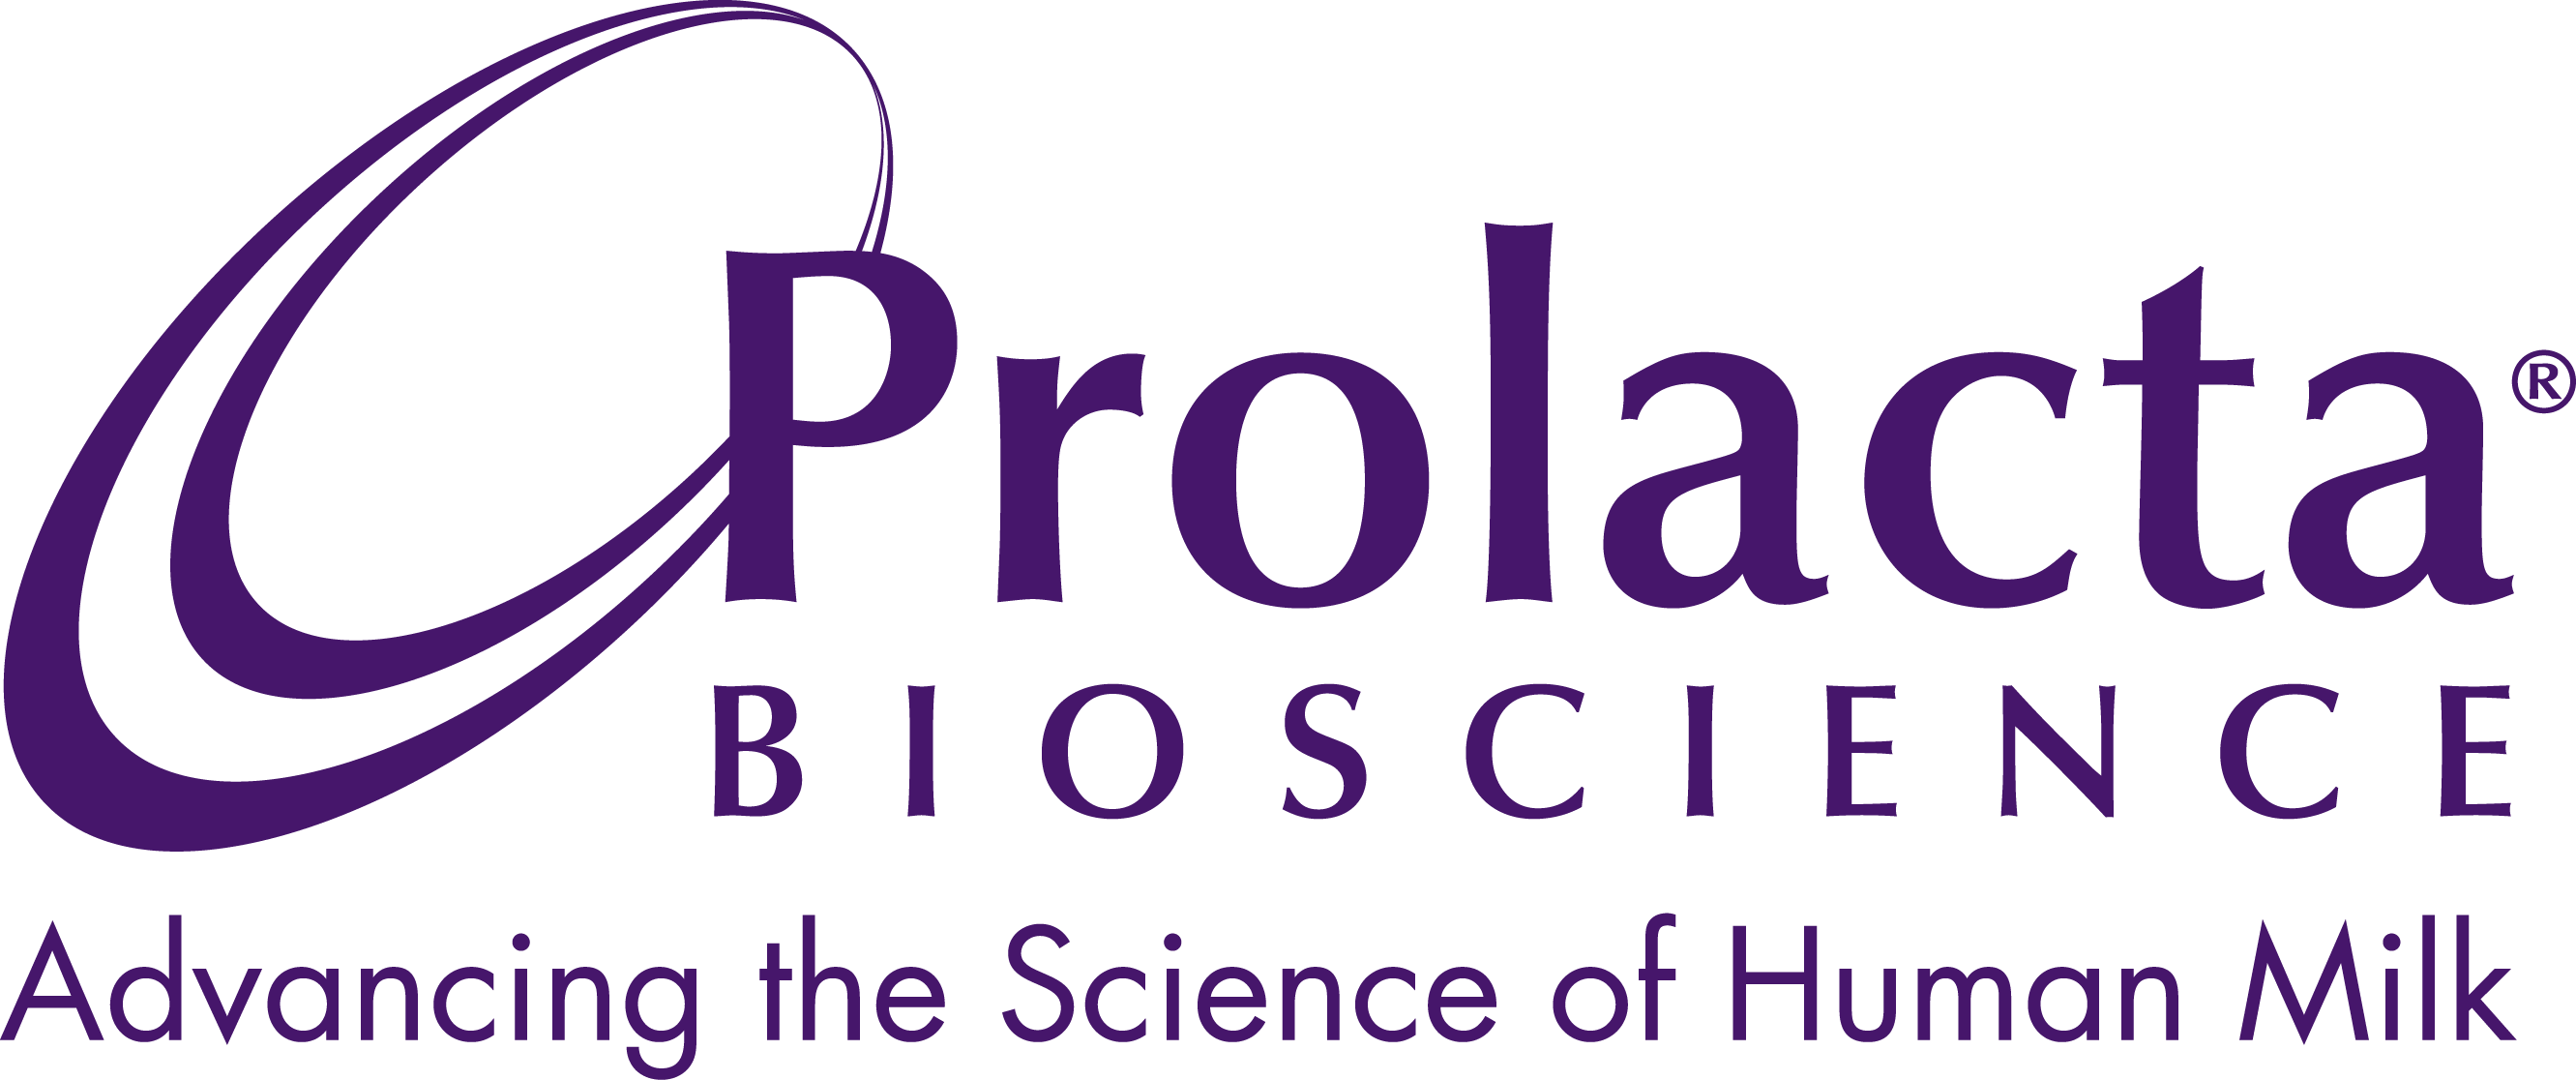 Prolacta logo_full-color.png